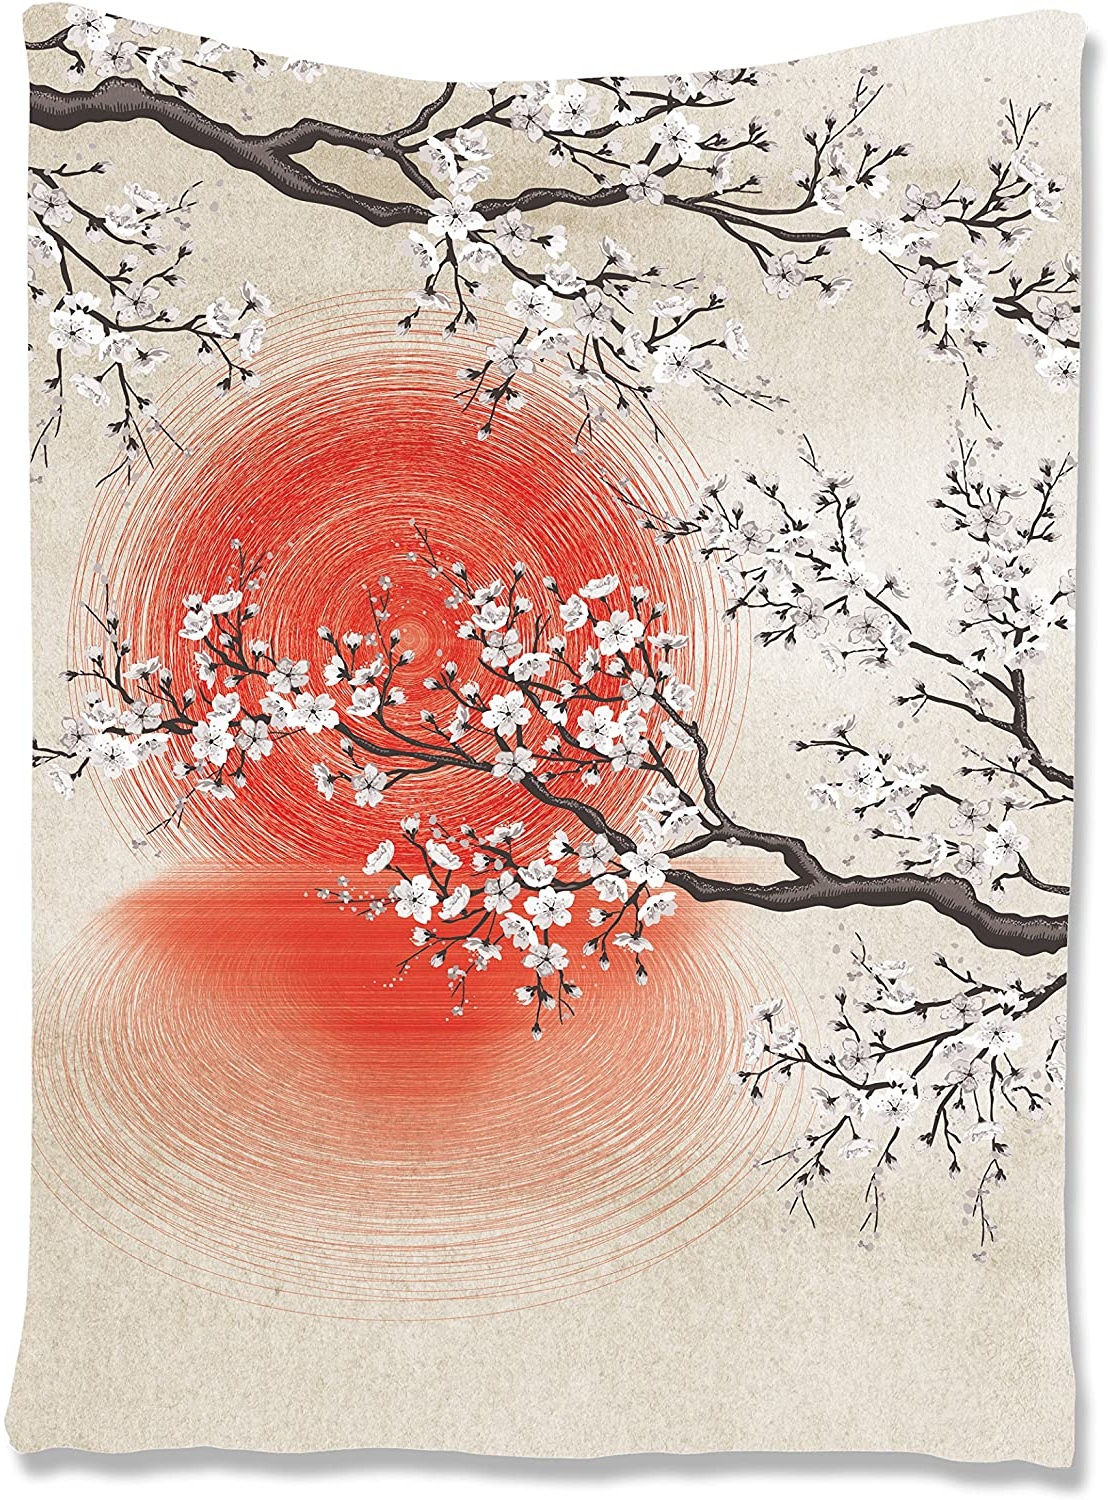 """Latest Blended Fabric Spring Blossom Tapestries Within Ambesonne Cherry Blossom Tapestry, Japanese Folkloric Themed Sakura Tree, Wall Hanging For Bedroom Living Room Dorm Decor, 40"""" X 60"""", Grey Yellow (View 14 of 20)"""